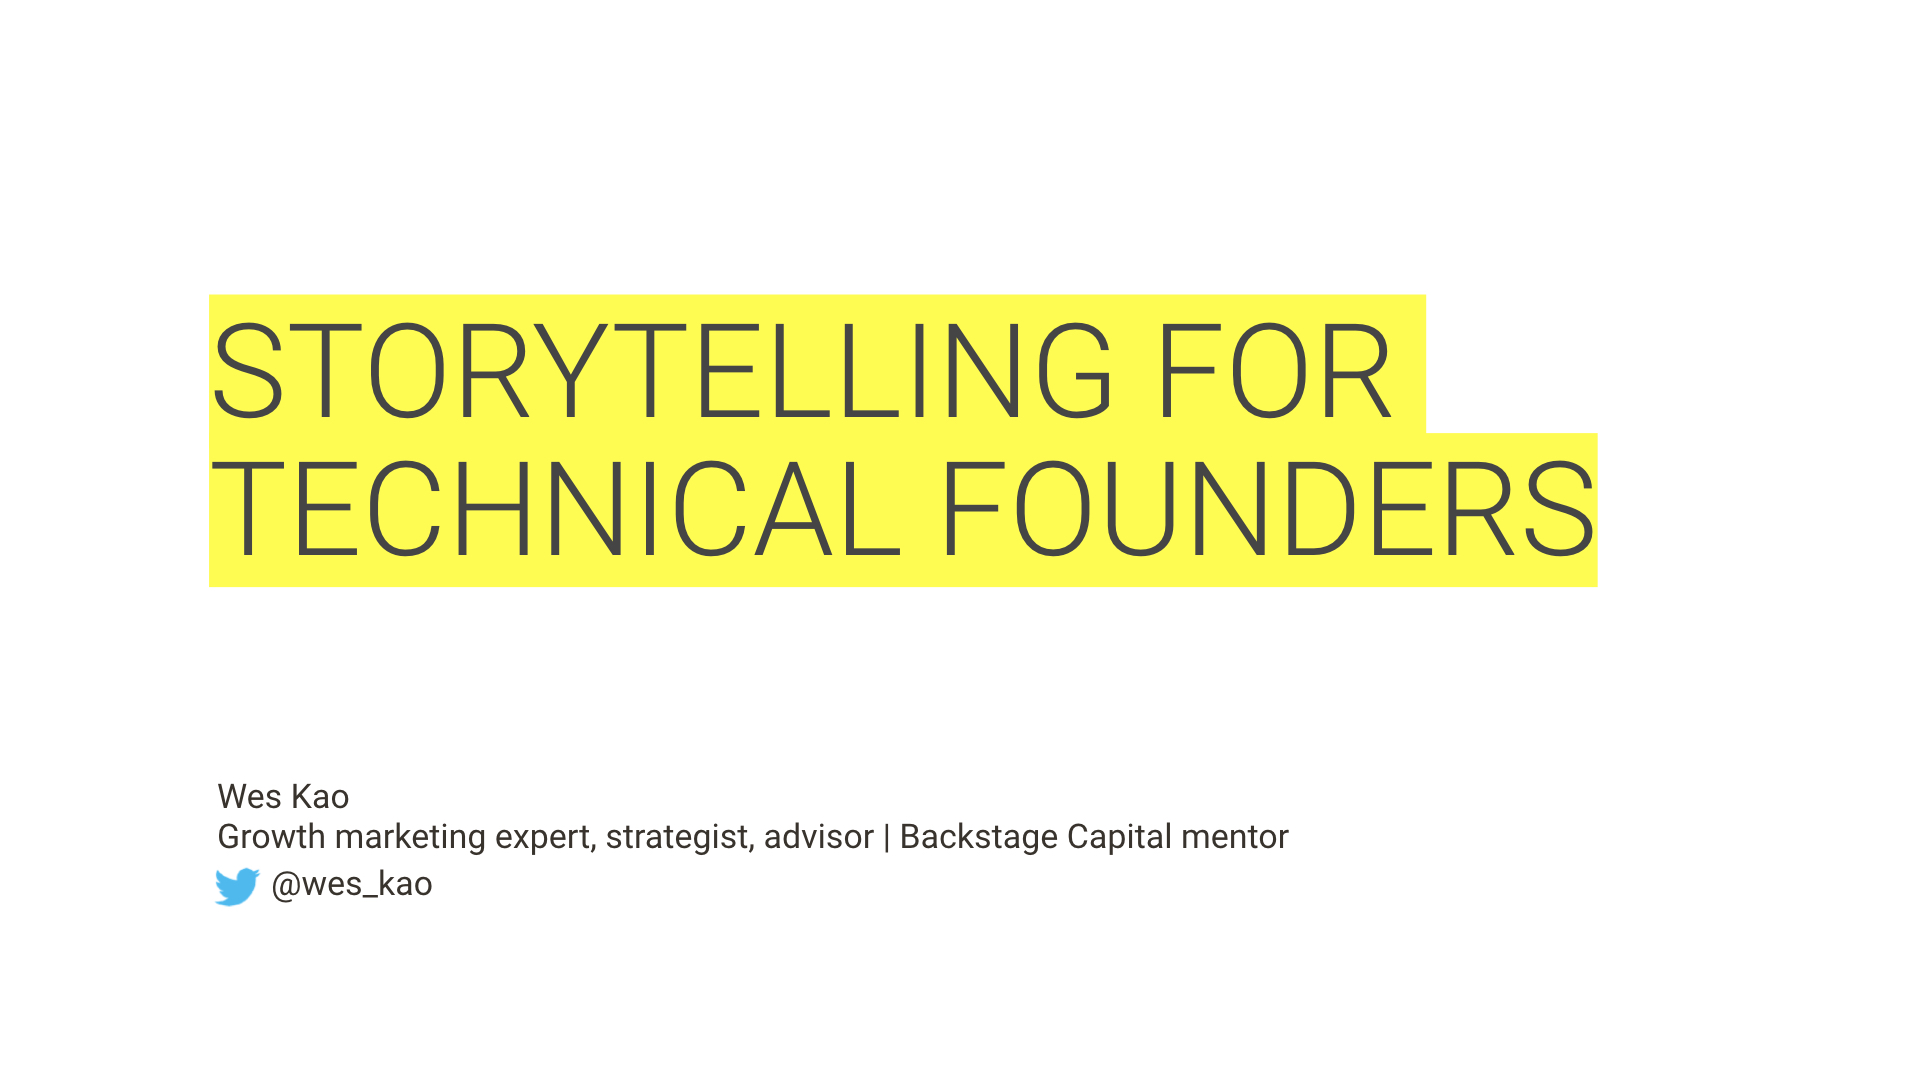 Storytelling for Technical Founders image.001.jpeg